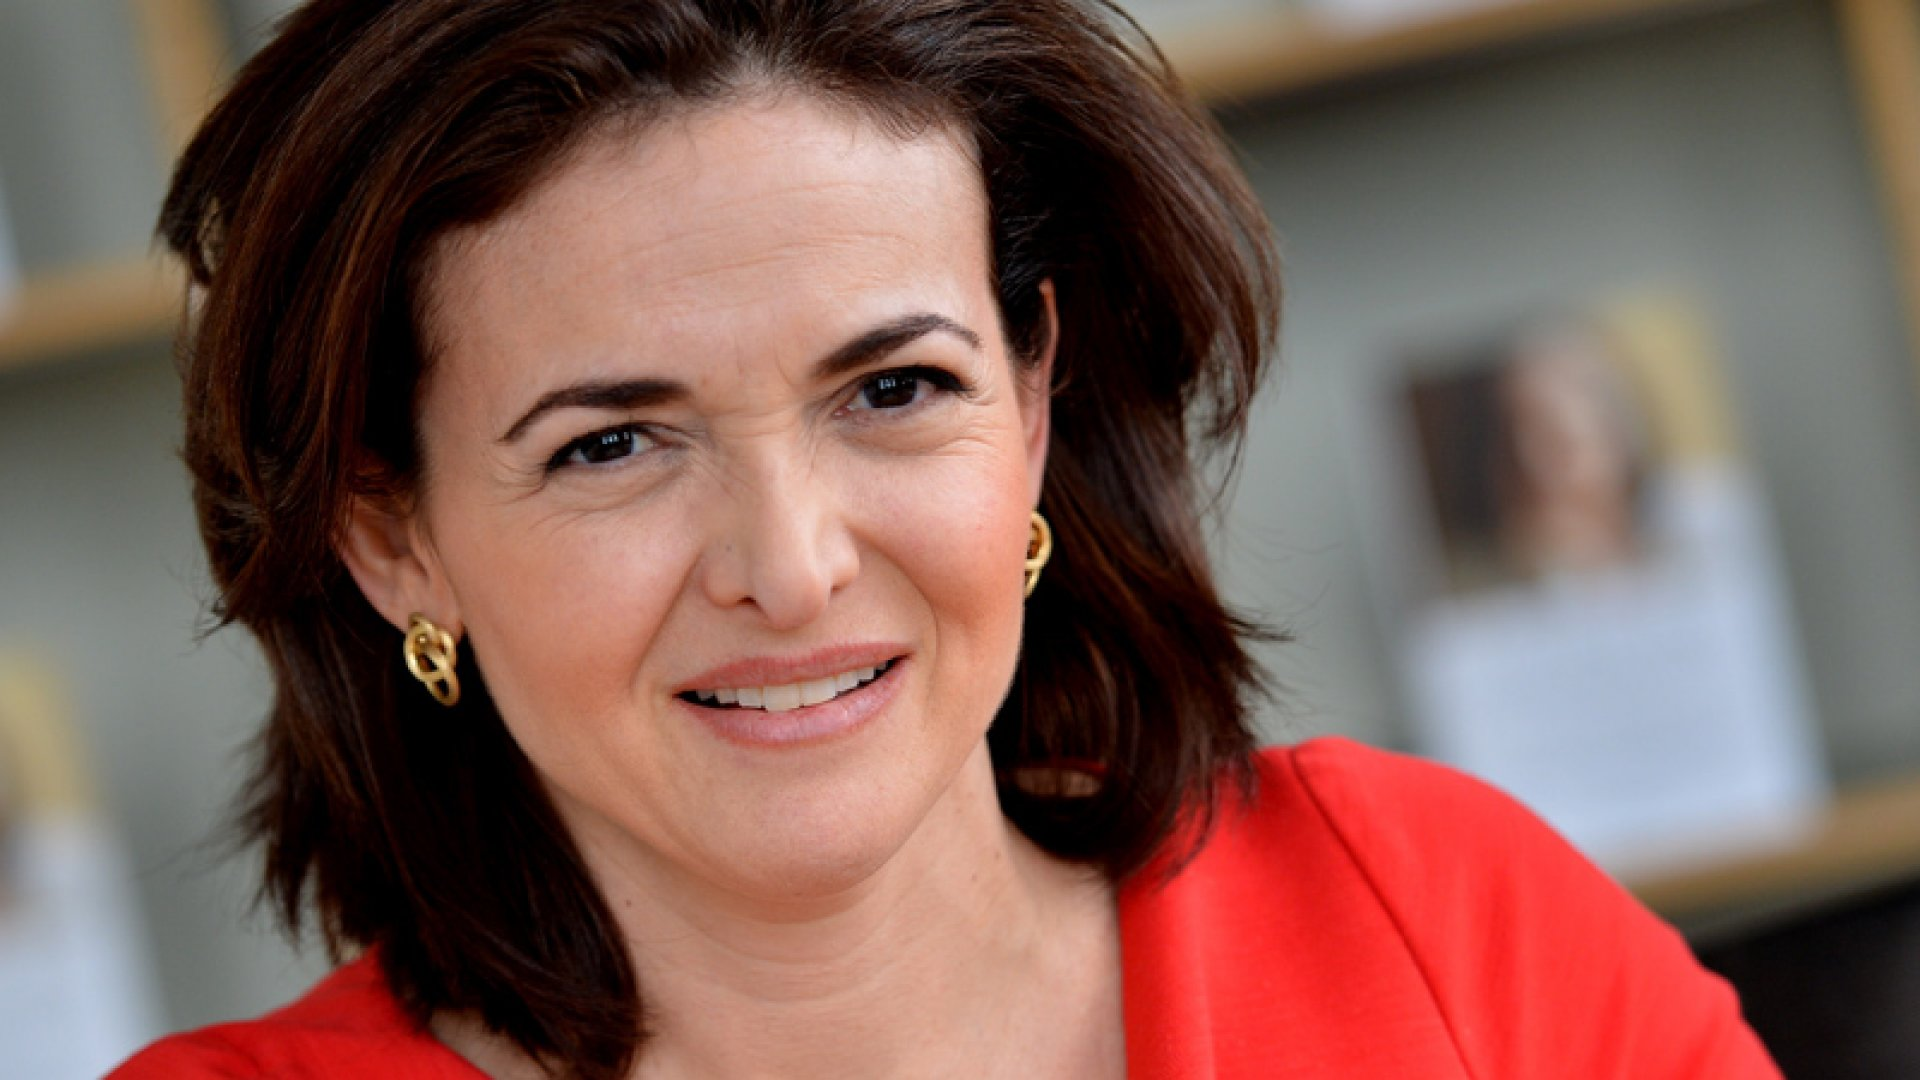 Facebook COO Sheryl Sandberg's advice: Don't be hampered by perfectionism <br> <br>